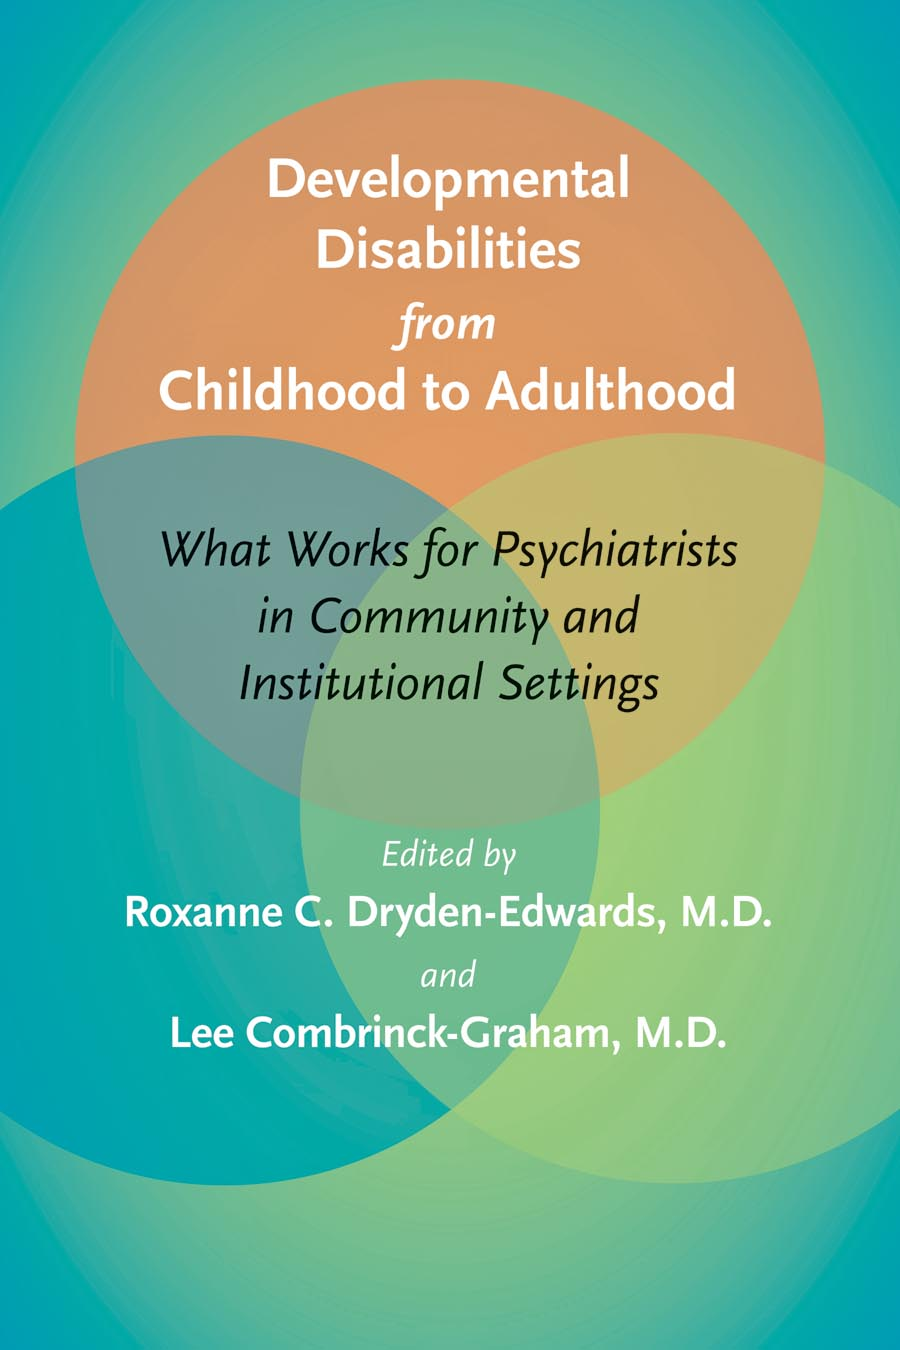 Developmental Disabilities from Childhood to Adulthood – What Works for Psychiatrists in Community and Institutional Settings